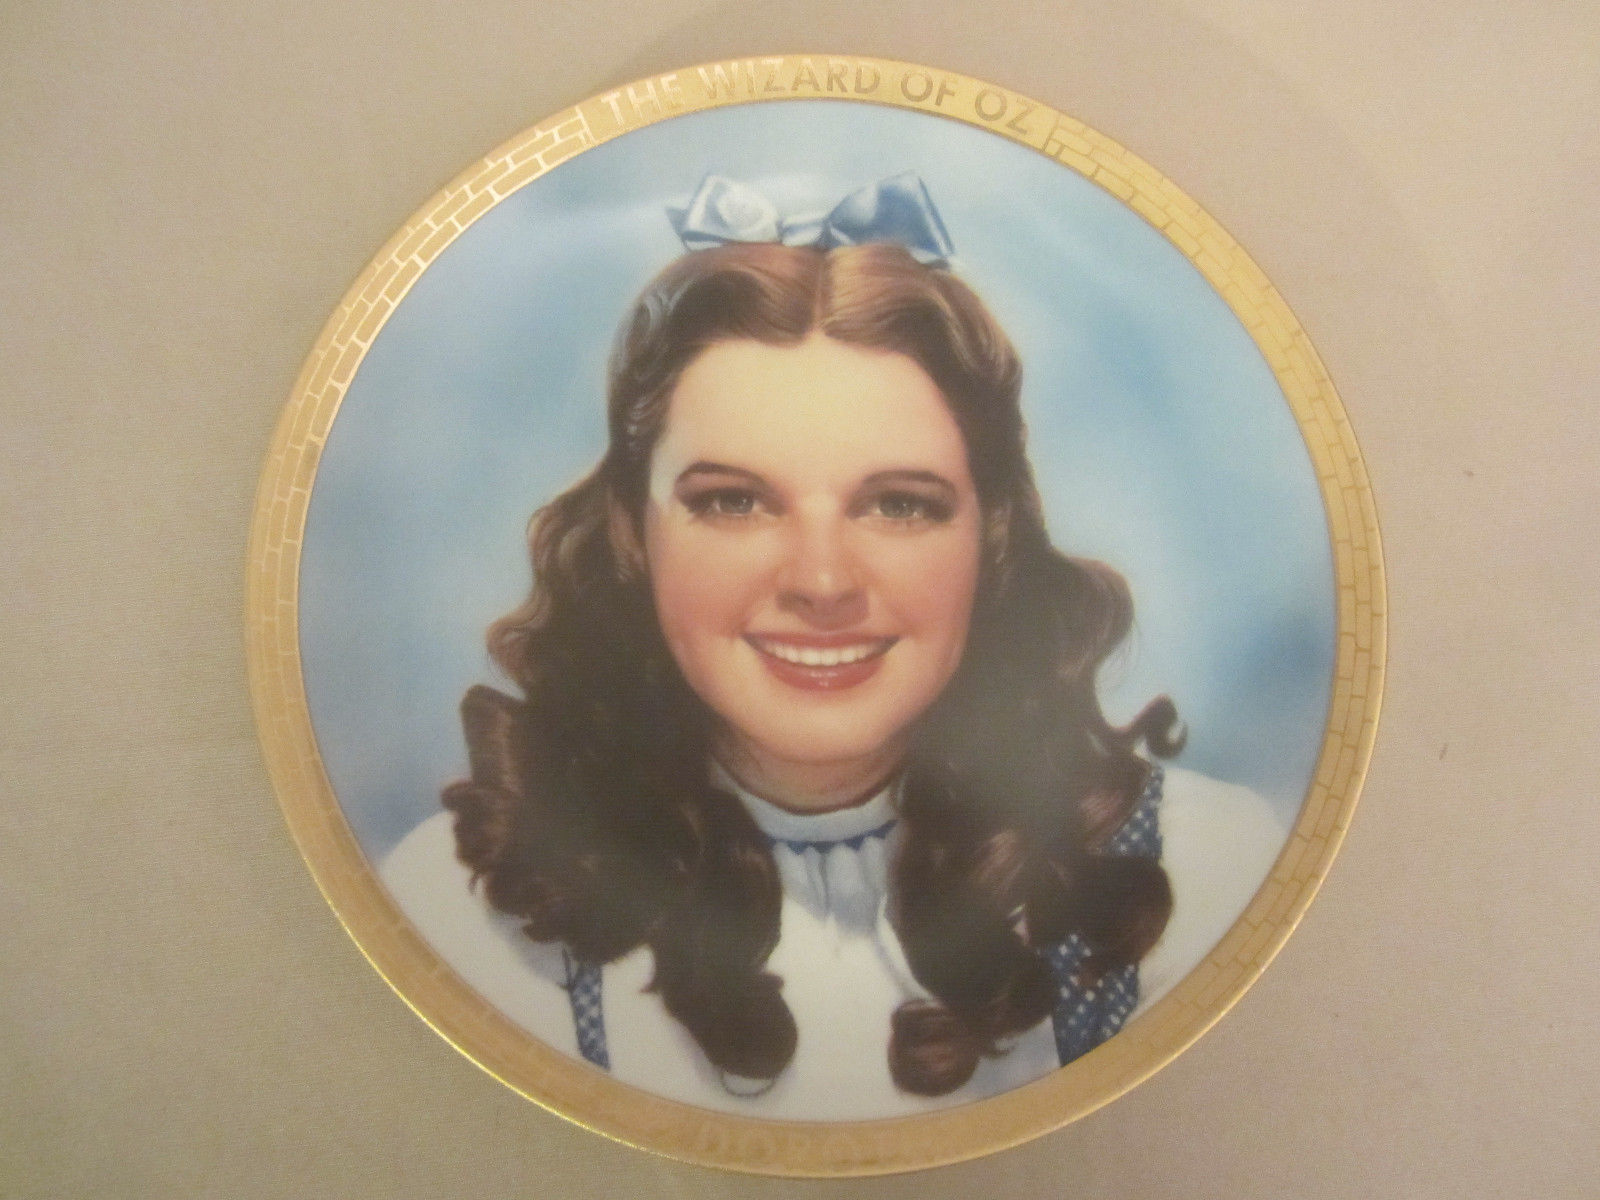 DOROTHY collector plate WIZARD OF OZ PORTRAITS Thomas Blackshear